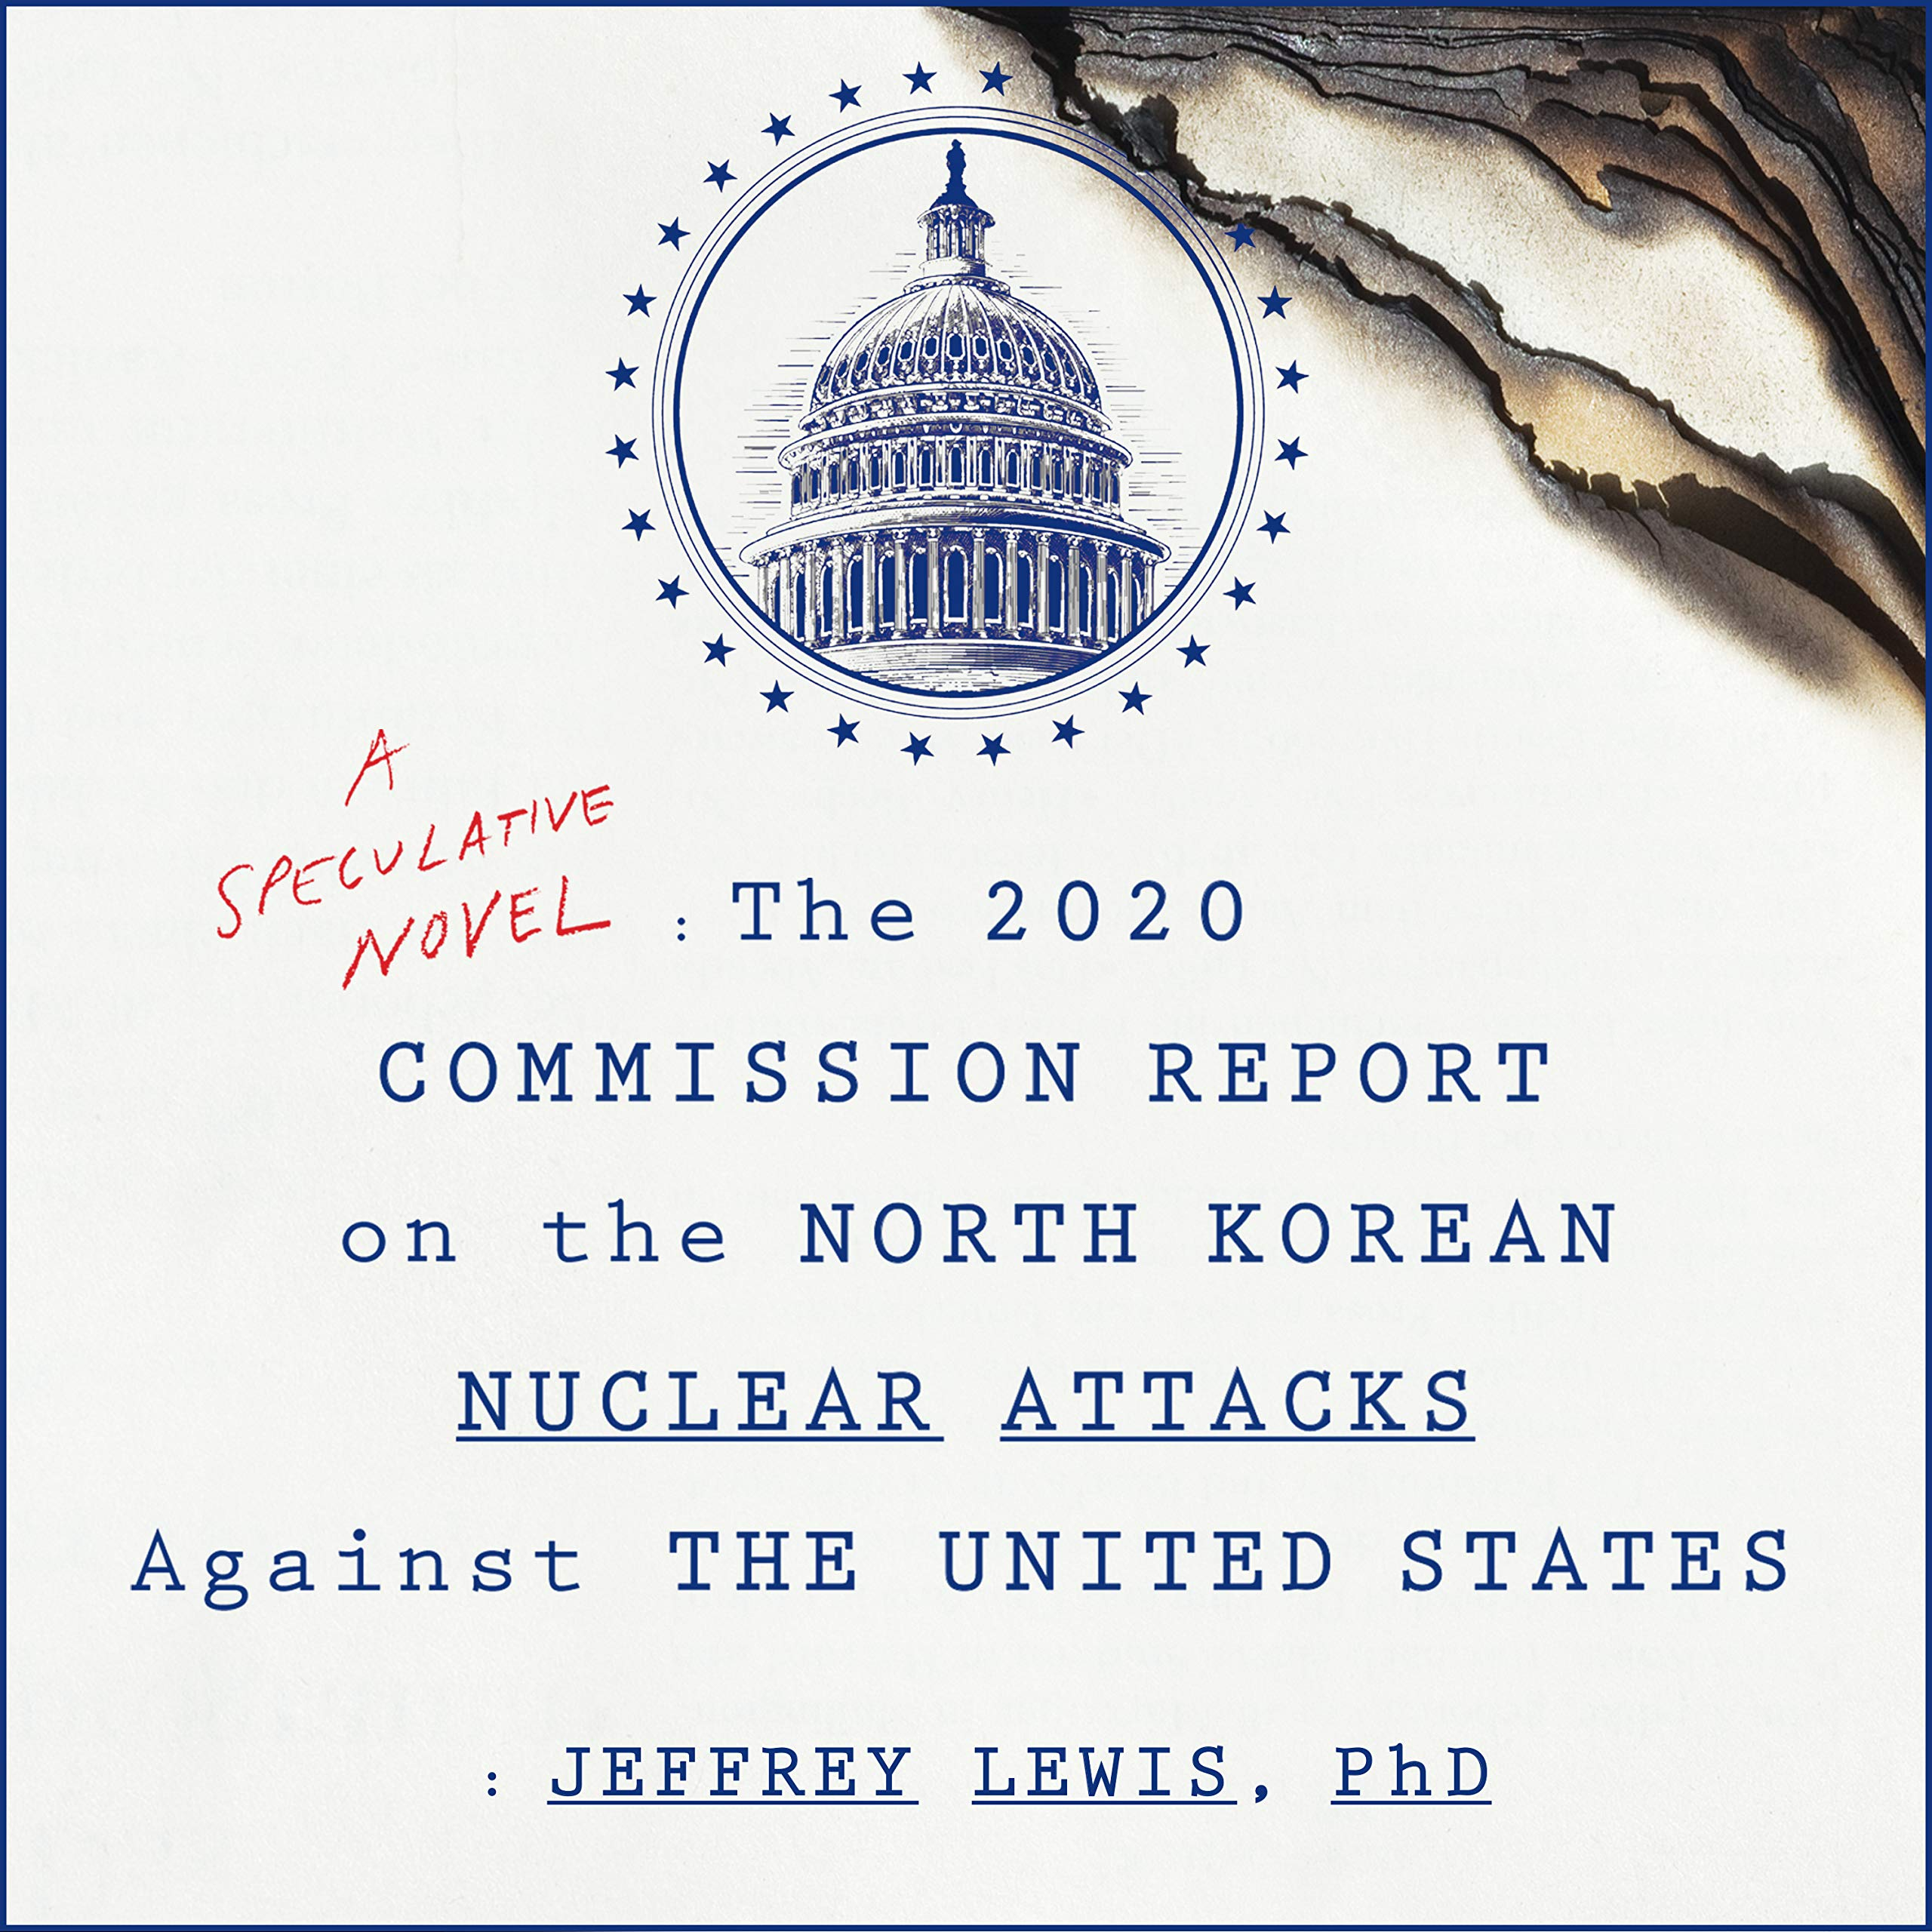 Best Audiobook 2020 The 2020 Commission Report on the North Korean Nuclear Attacks